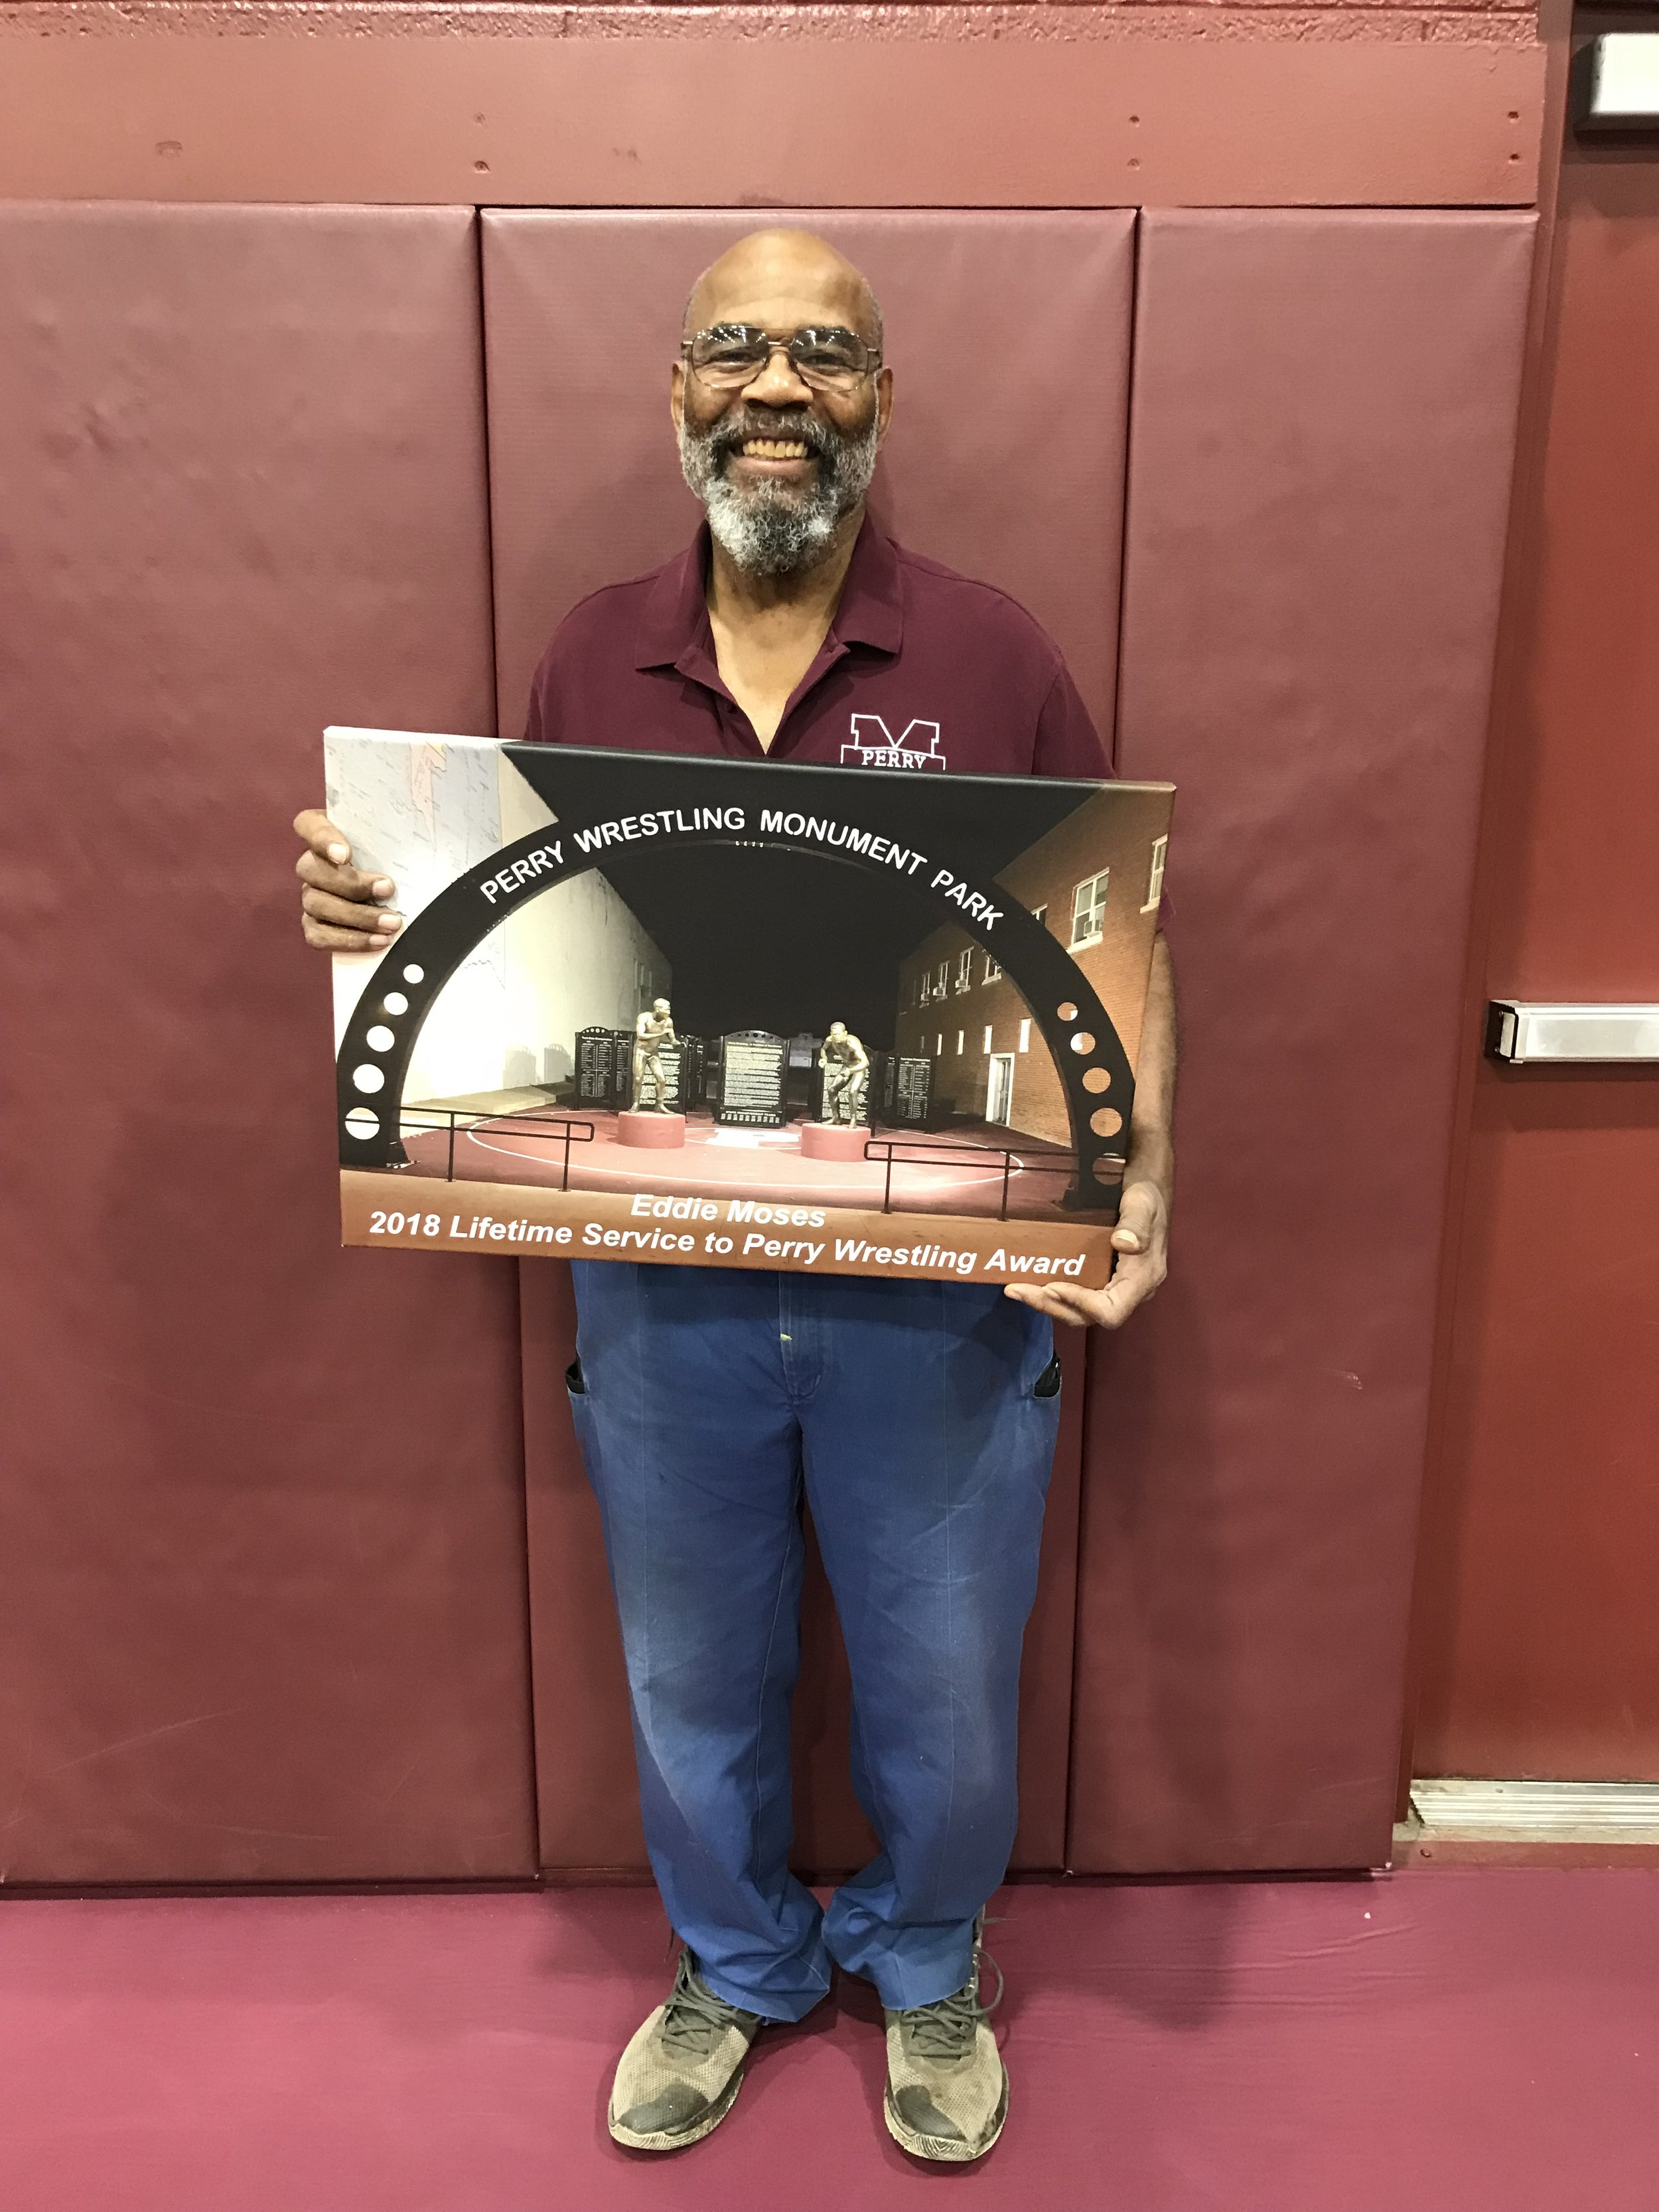 """Eddie Moses   Eddie Moses was a 1975 state runner-up while competing for the Maroons before turning to coaching. He served as a youth coach for many years and was the type of coach that always got the most out of the wrestlers with his positive and uplifting coaching style. His coaching helped develop many young wrestlers that later became high school state champions. For the past several years, his fanatical and enthusiastic support of anything to do with Perry Schools has not gone unnoticed. While a huge supporter of all of the sports, his passion for Perry Wrestling is 2nd to none. He always has a big grin on his face and a """"Can Do"""" attitude that puts everyone around him in a good mood."""